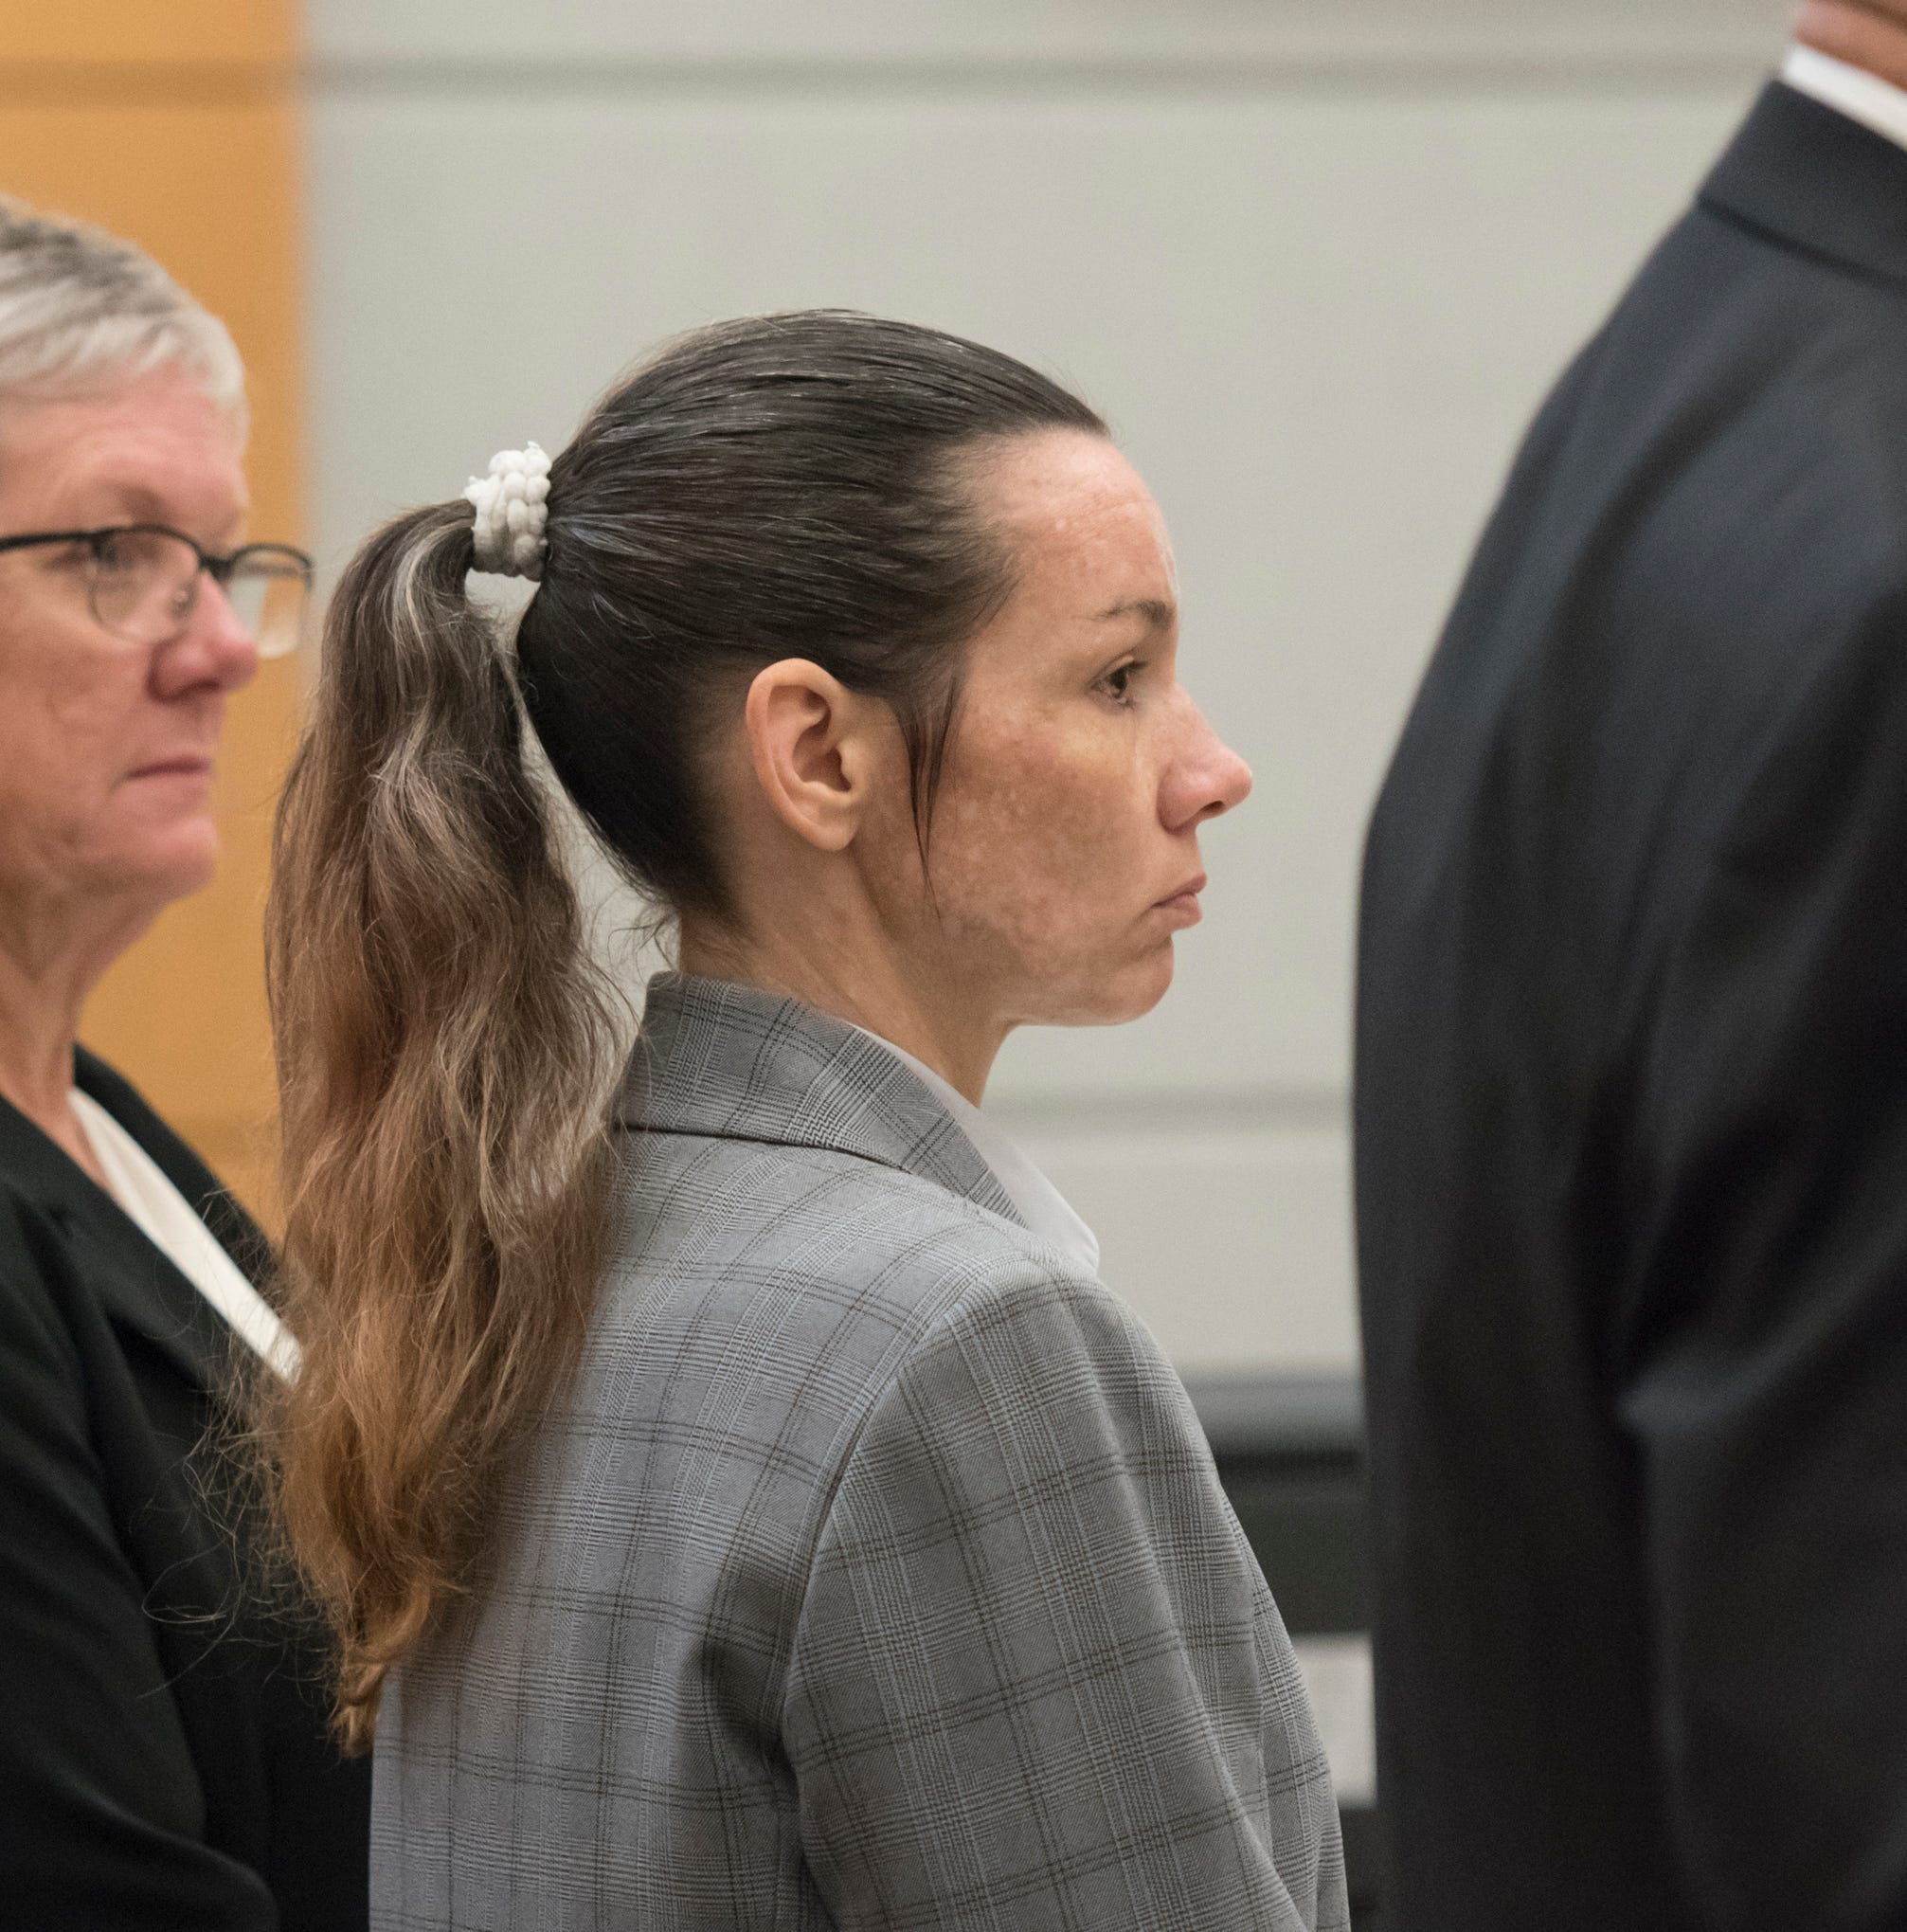 Trial testimony: Mary Rice purchased assault rifle from classified ad during murder spree